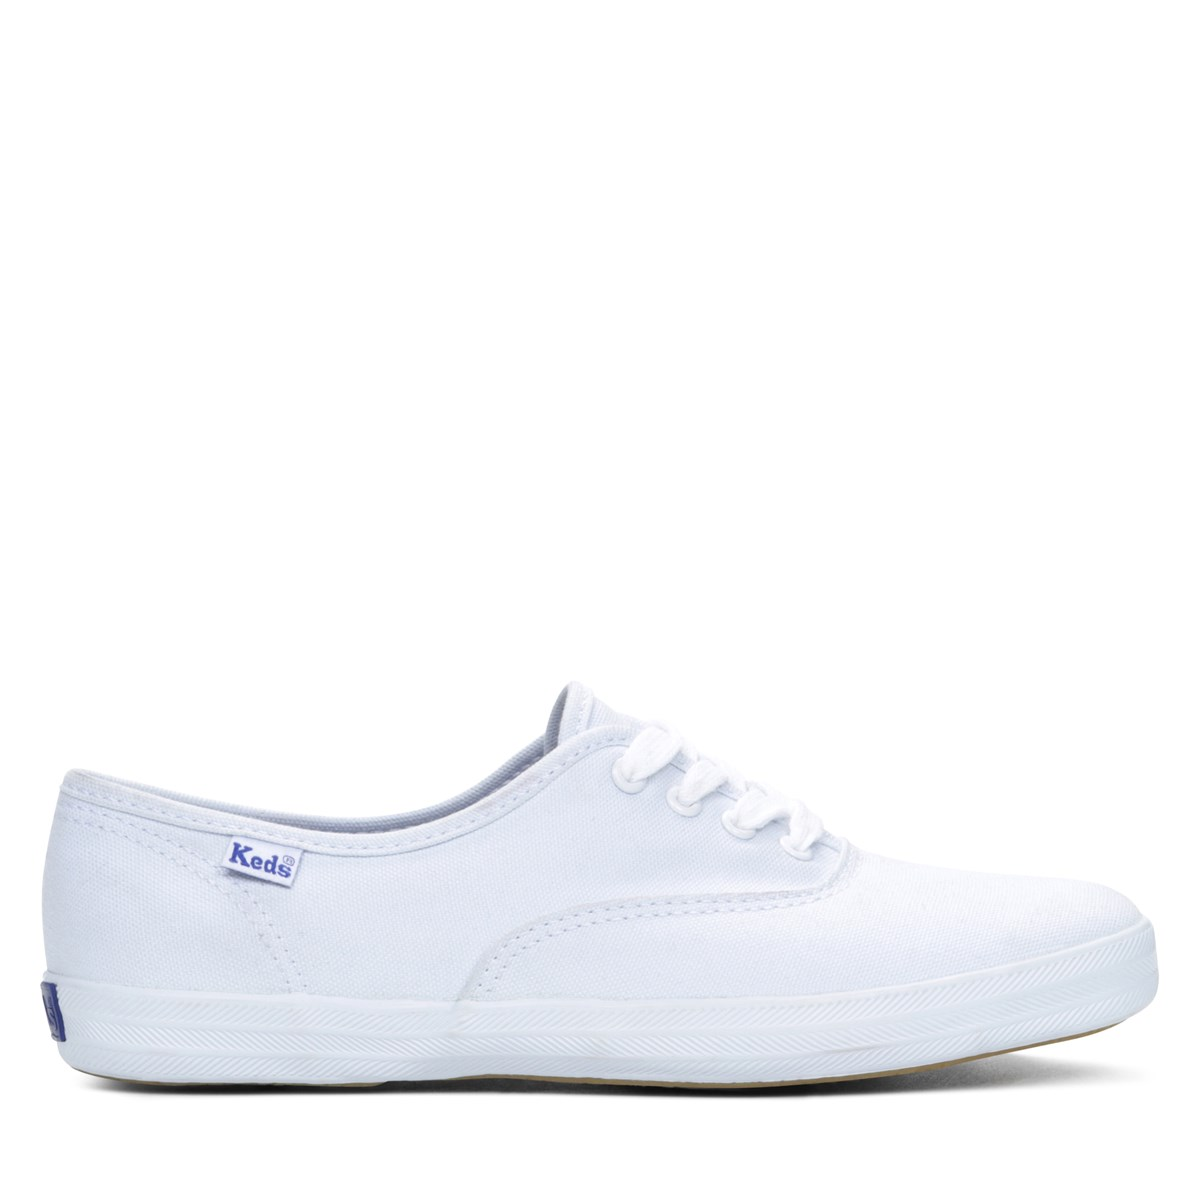 Women's Champion Originals Sneakers in White